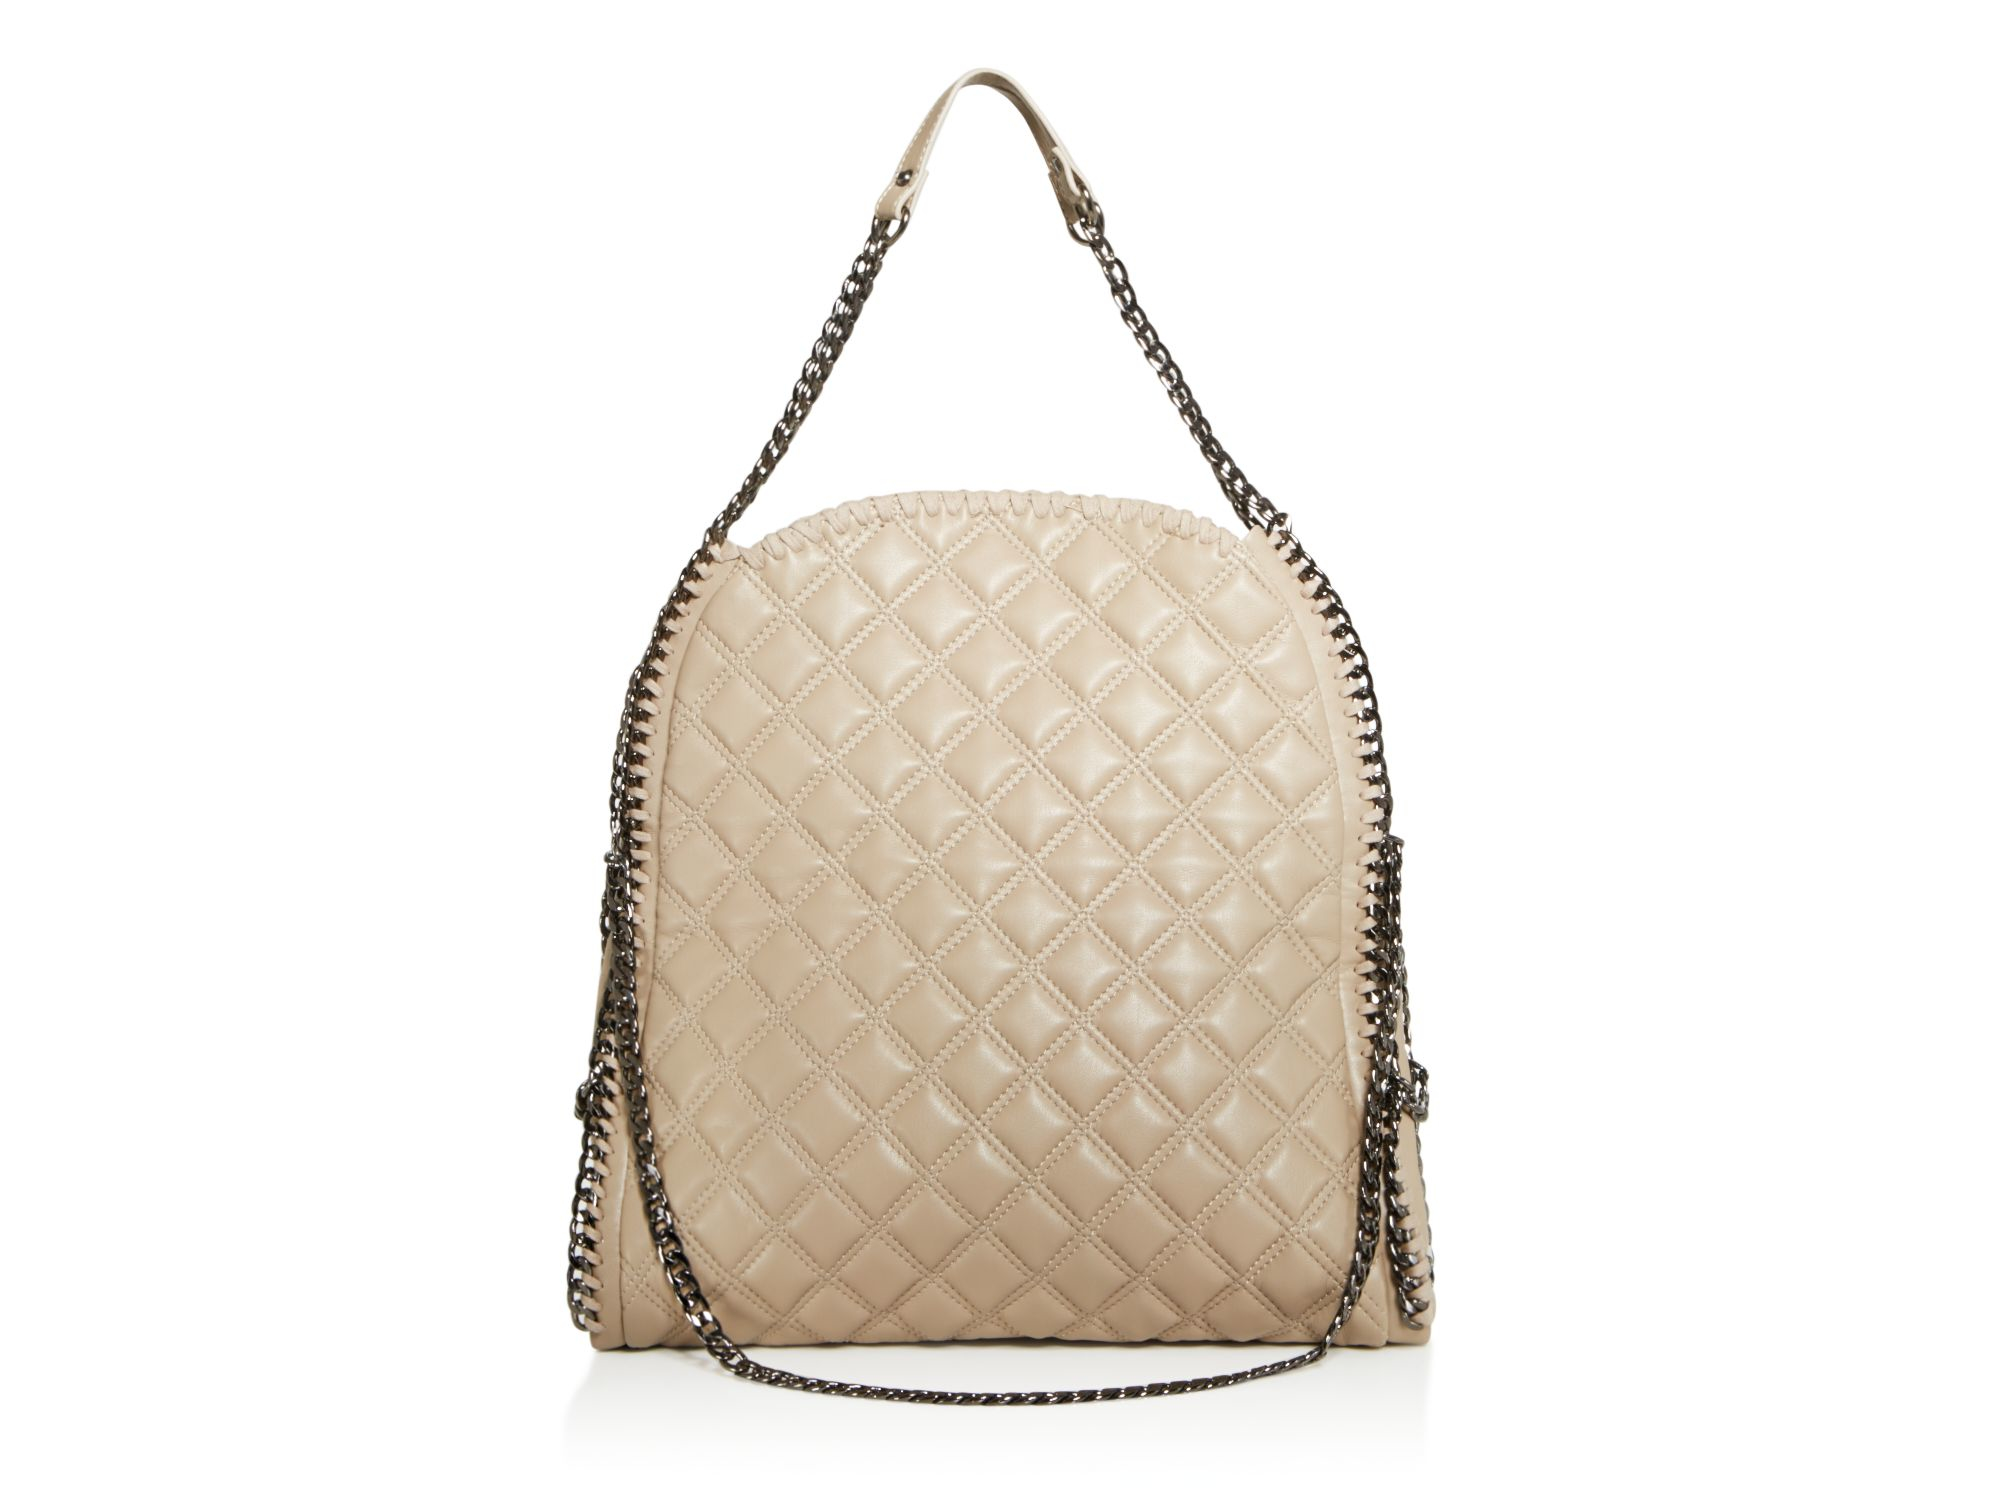 21e3768b29 Steve Madden Totally Quilt Tote - Compare At $118 in Brown - Lyst